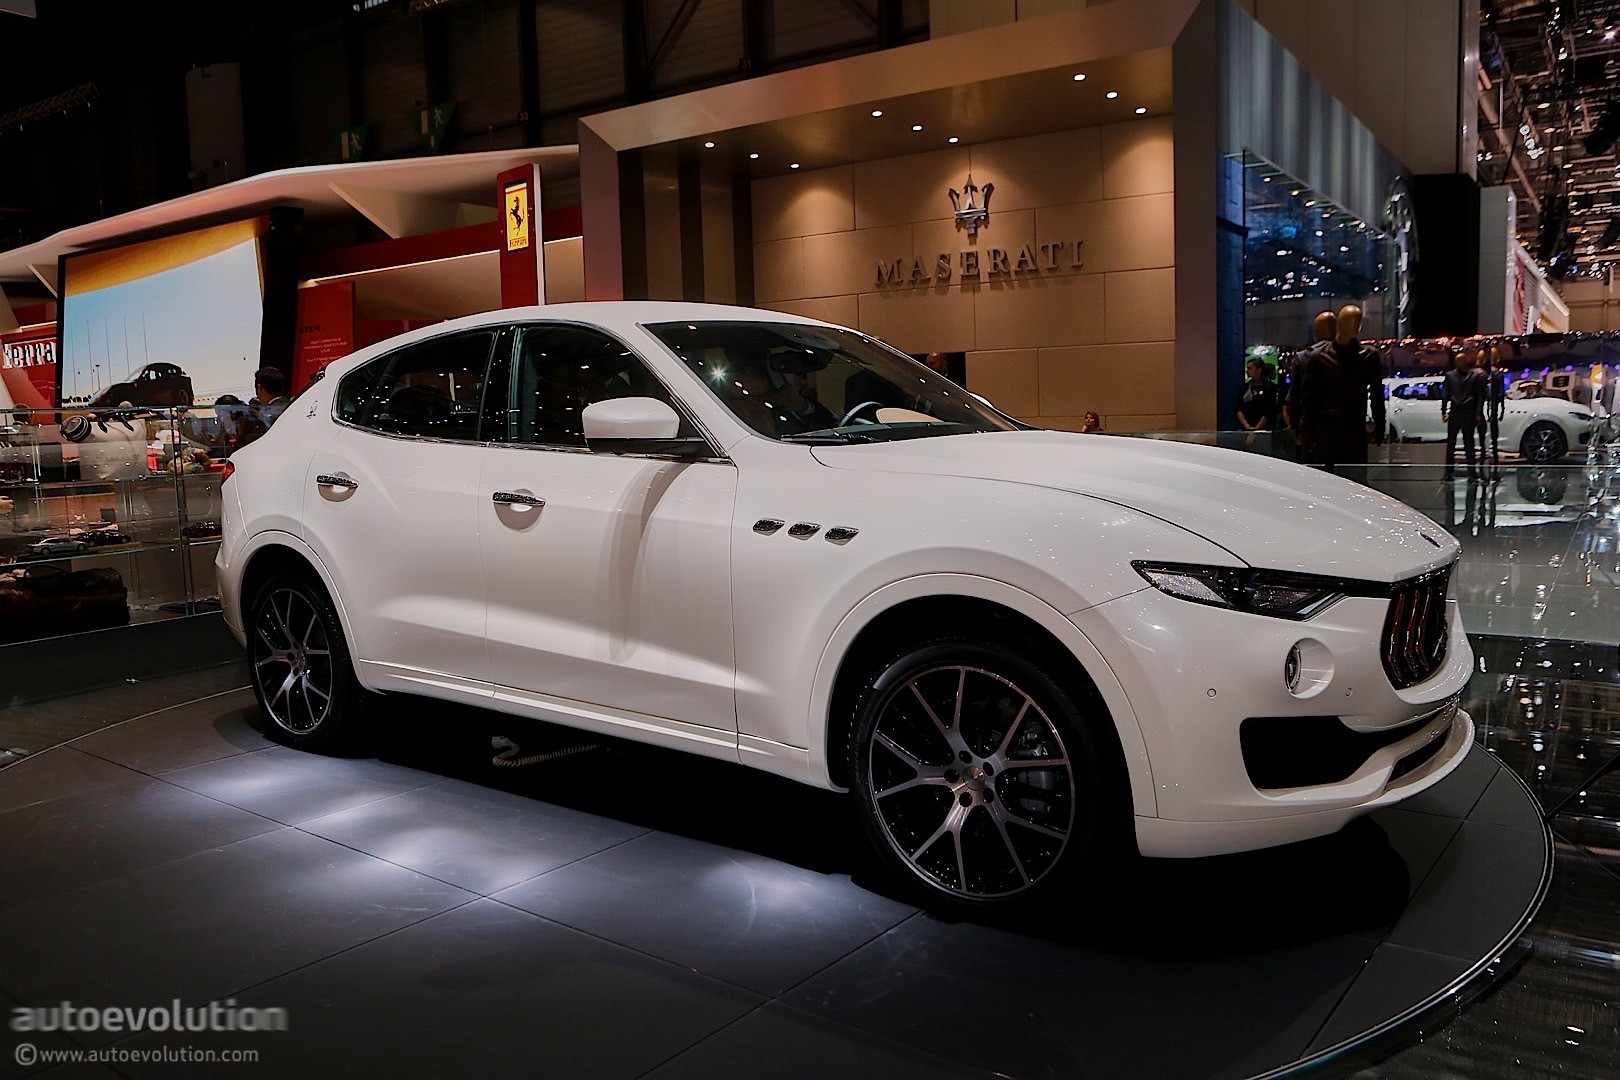 2017 maserati levante us pricing announced, it's coming to new york